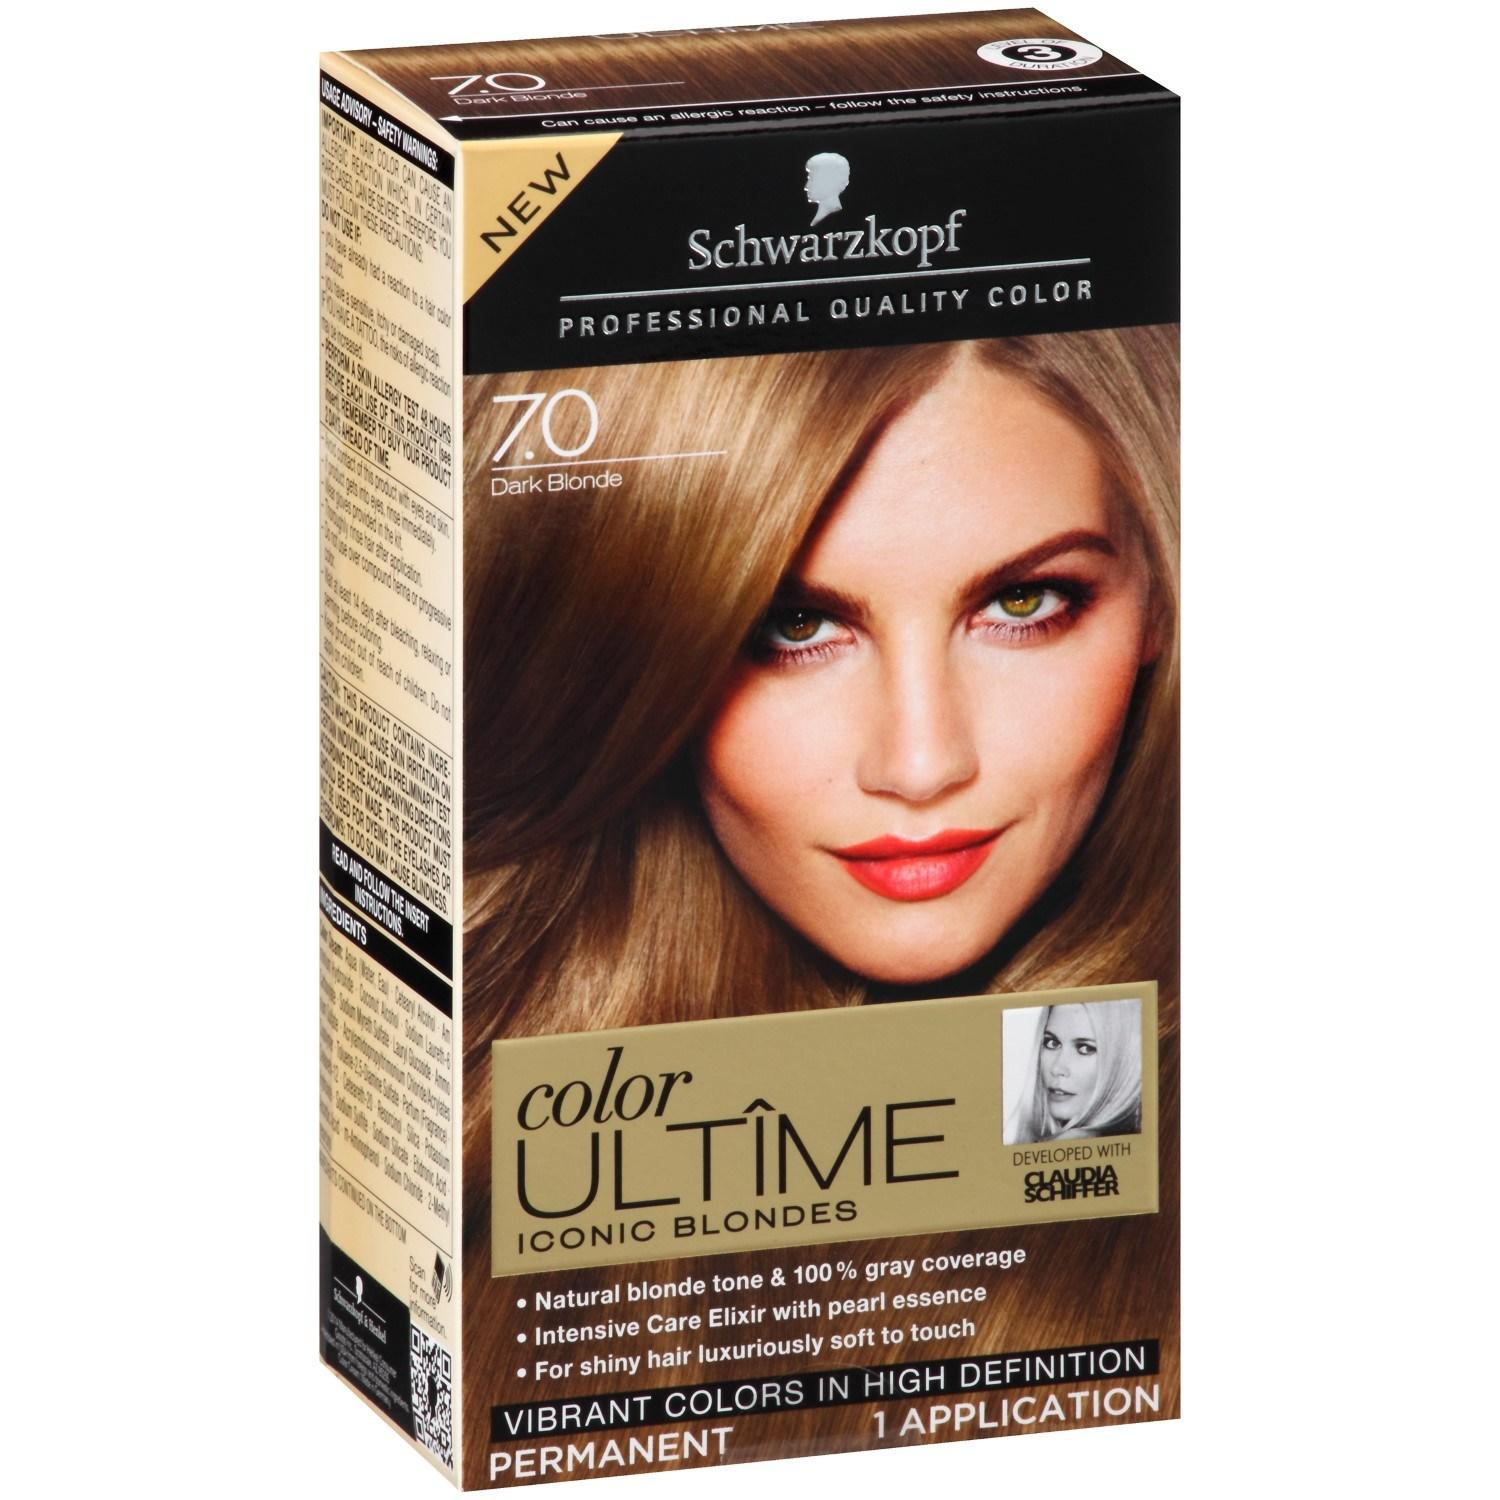 The Best Schwarzkopf Color Ultime Hair Color Cream 7 Dark Blonde Tube 2 03 Oz Jet Com Pictures